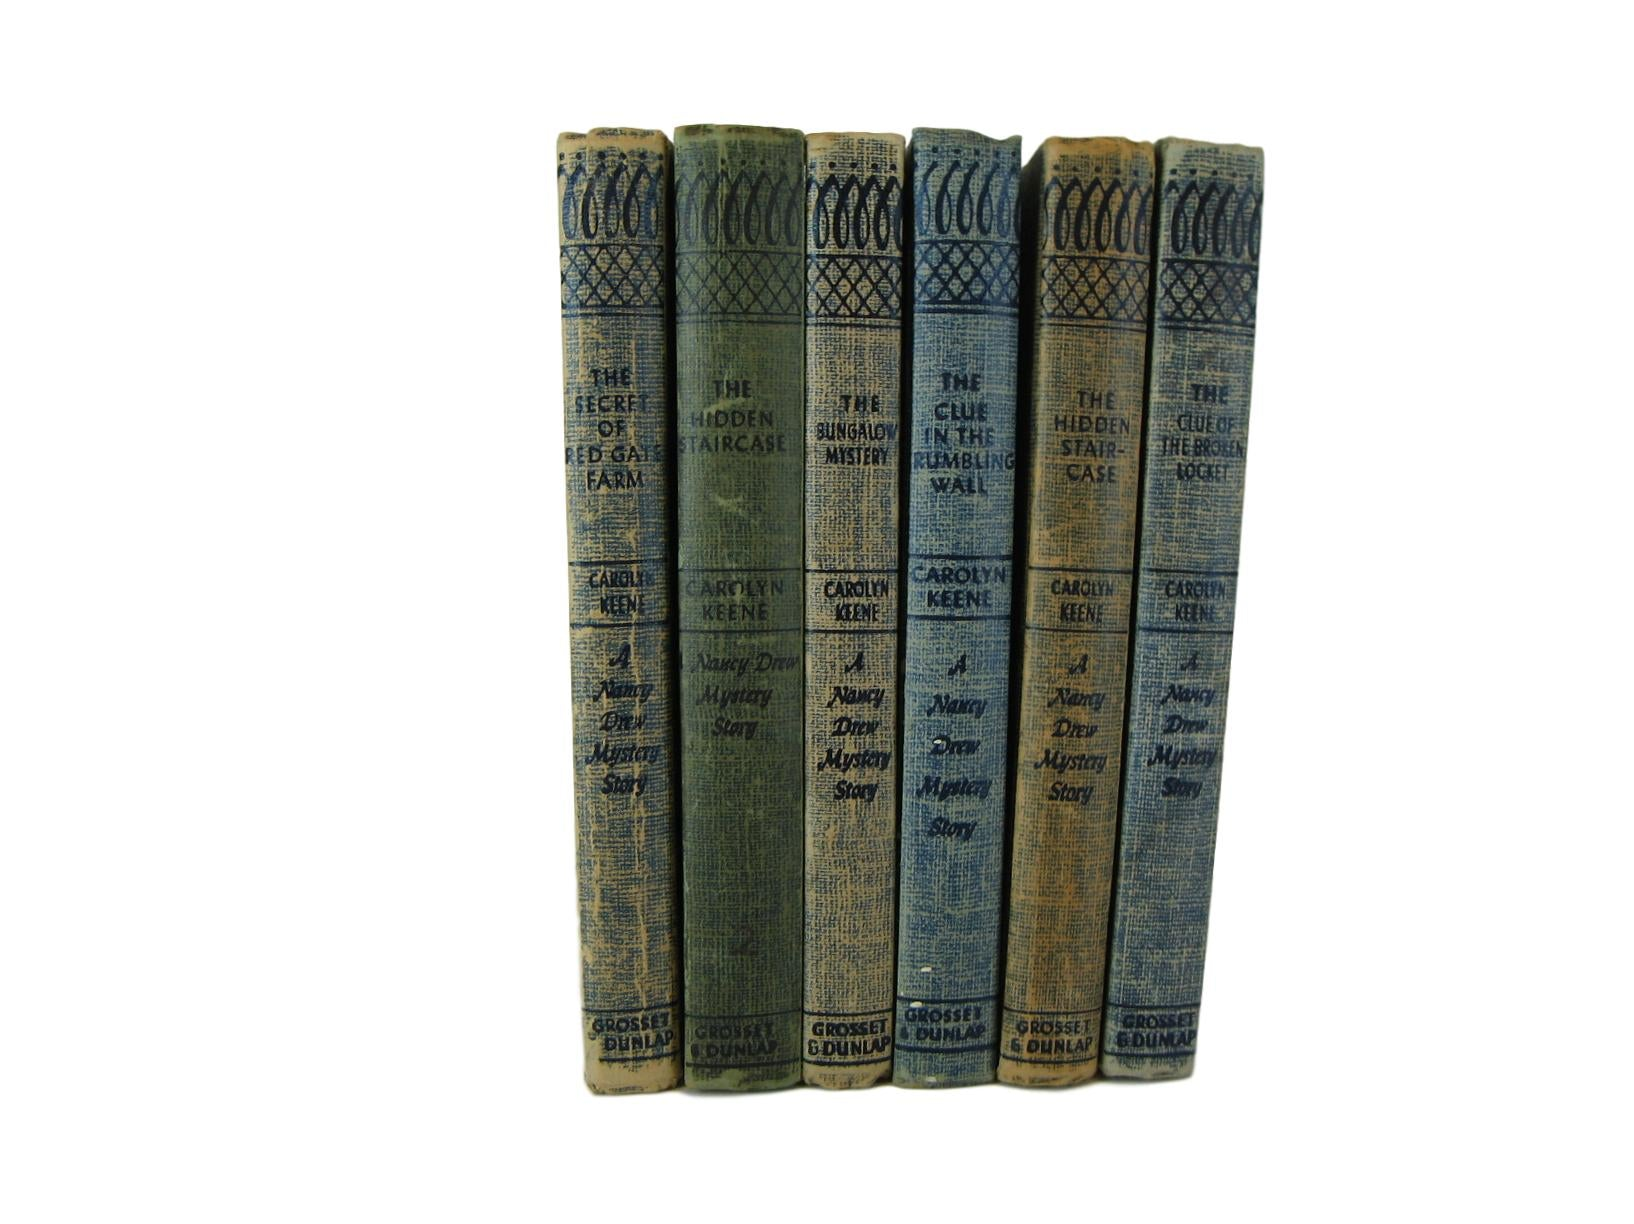 Nancy Drew Mystery Book Set, S/6 - Decades of Vintage